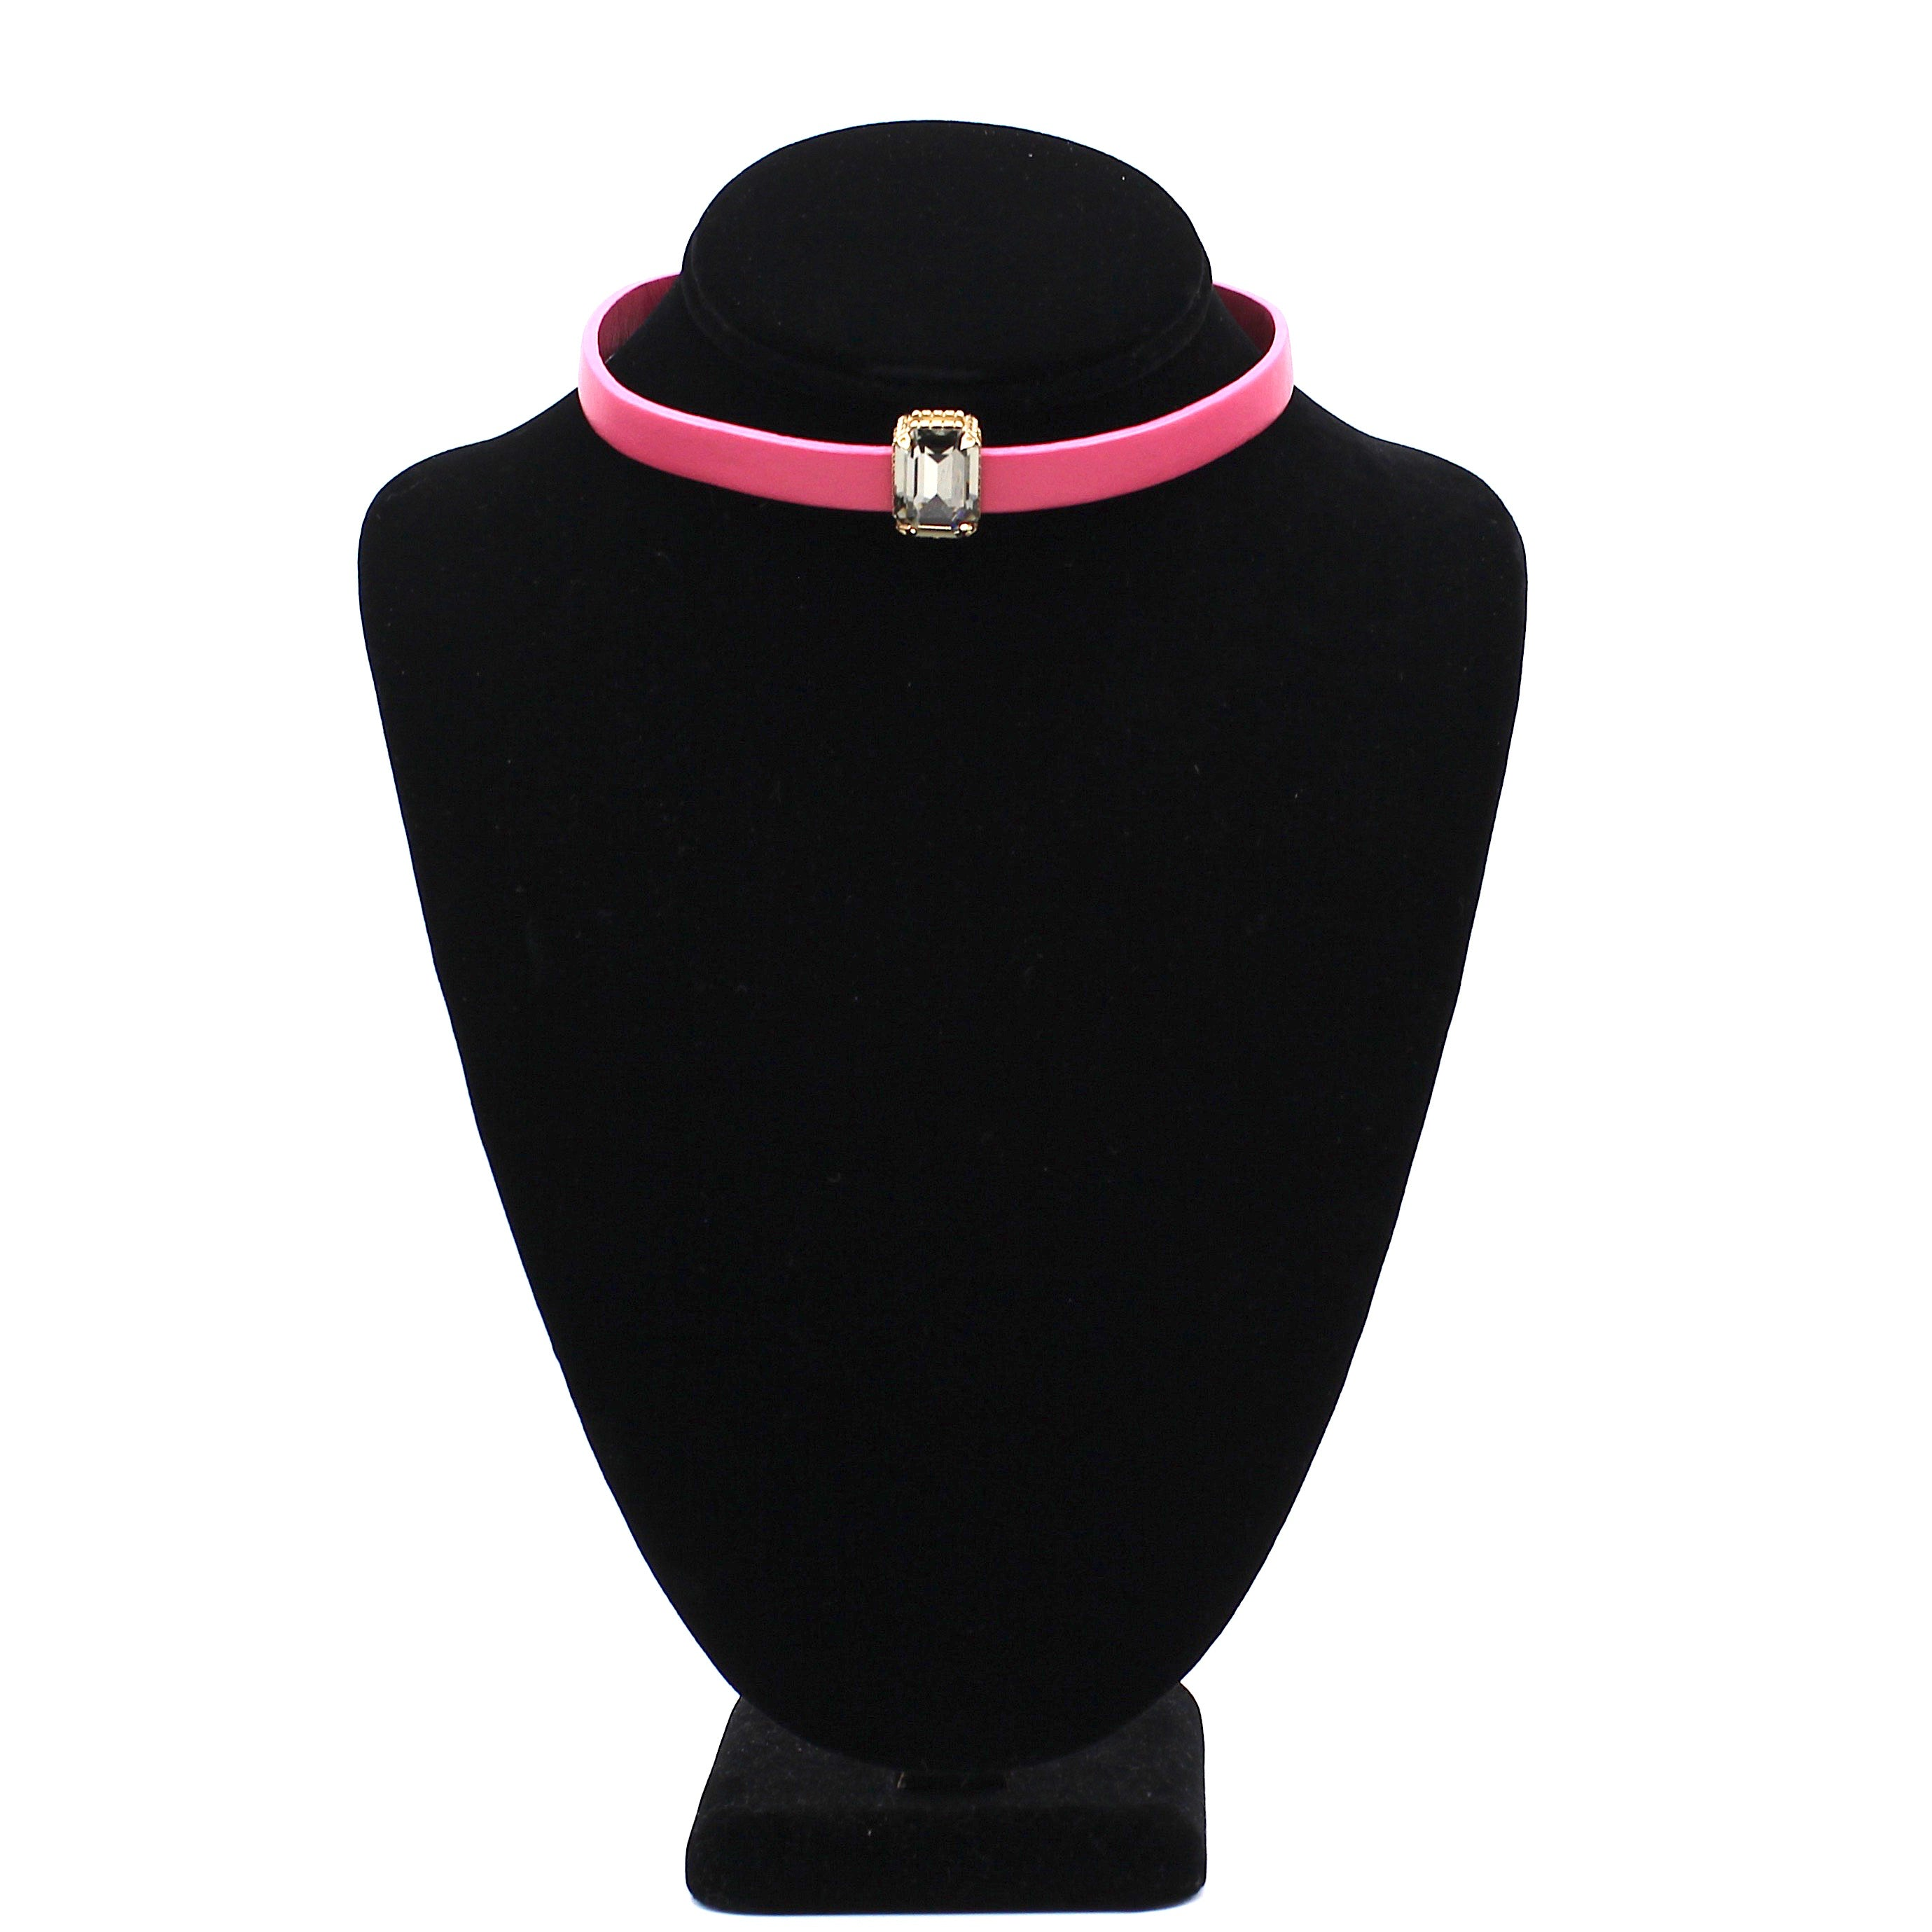 Crystal Choker - Fairchild Baldwin - Handmade in Italy